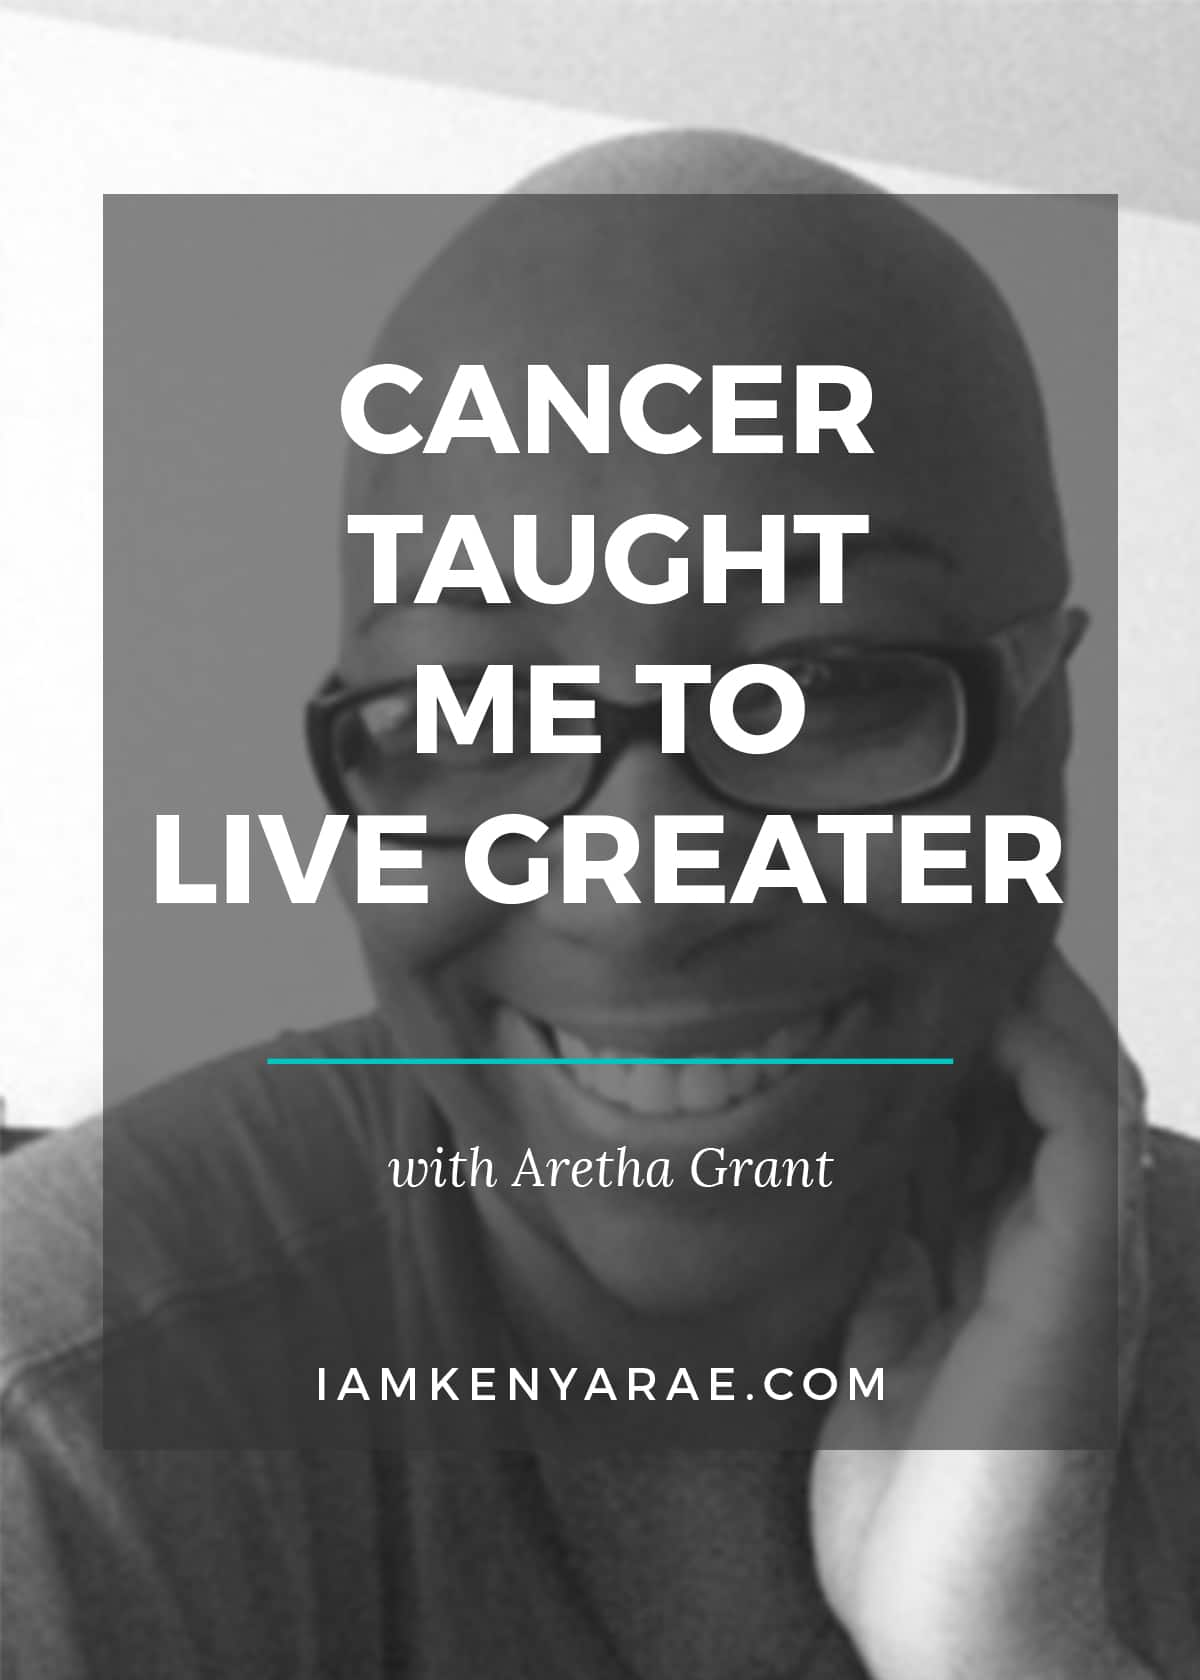 cancer taught me to live greater